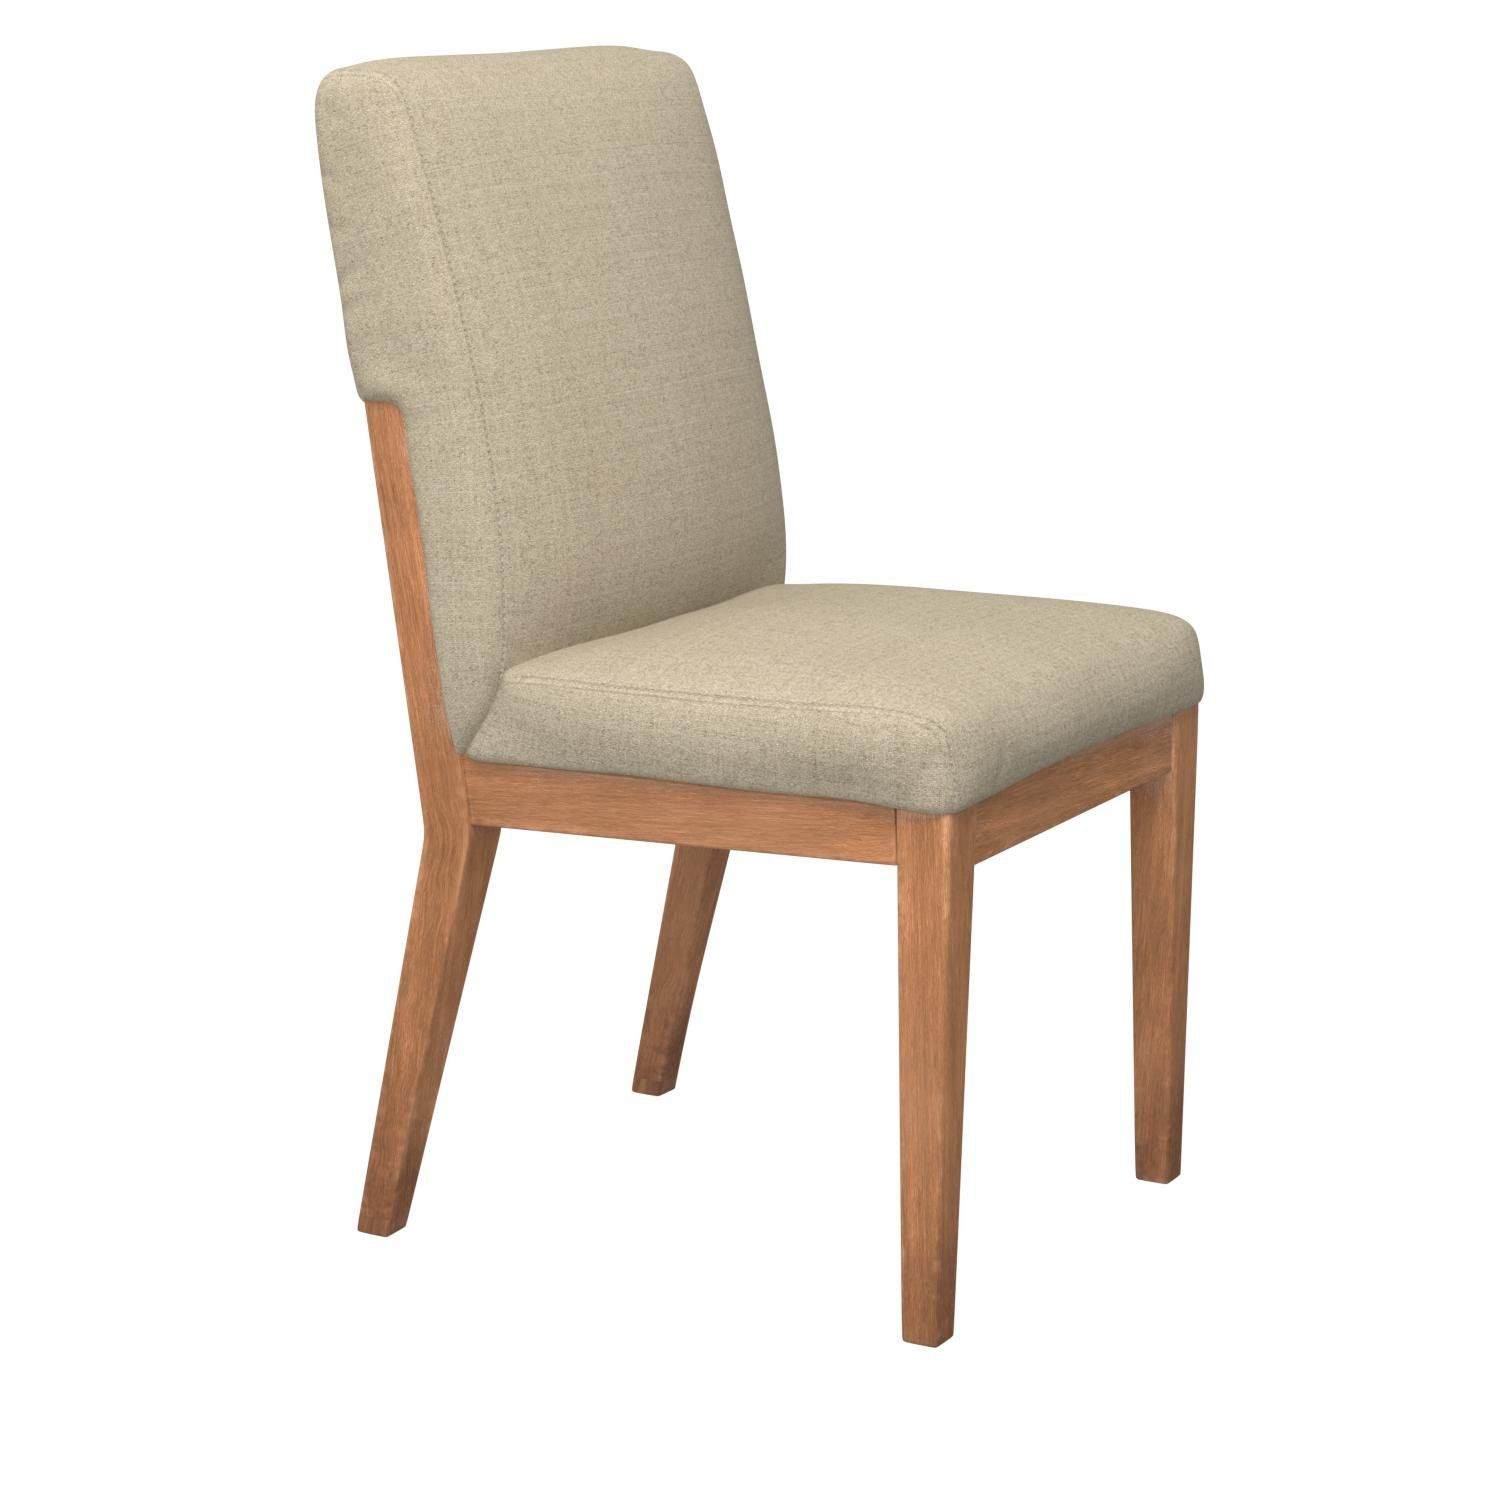 Best Stone And Beam Sophia Modern Accent Chairs 36H Set Of 2 400 x 300